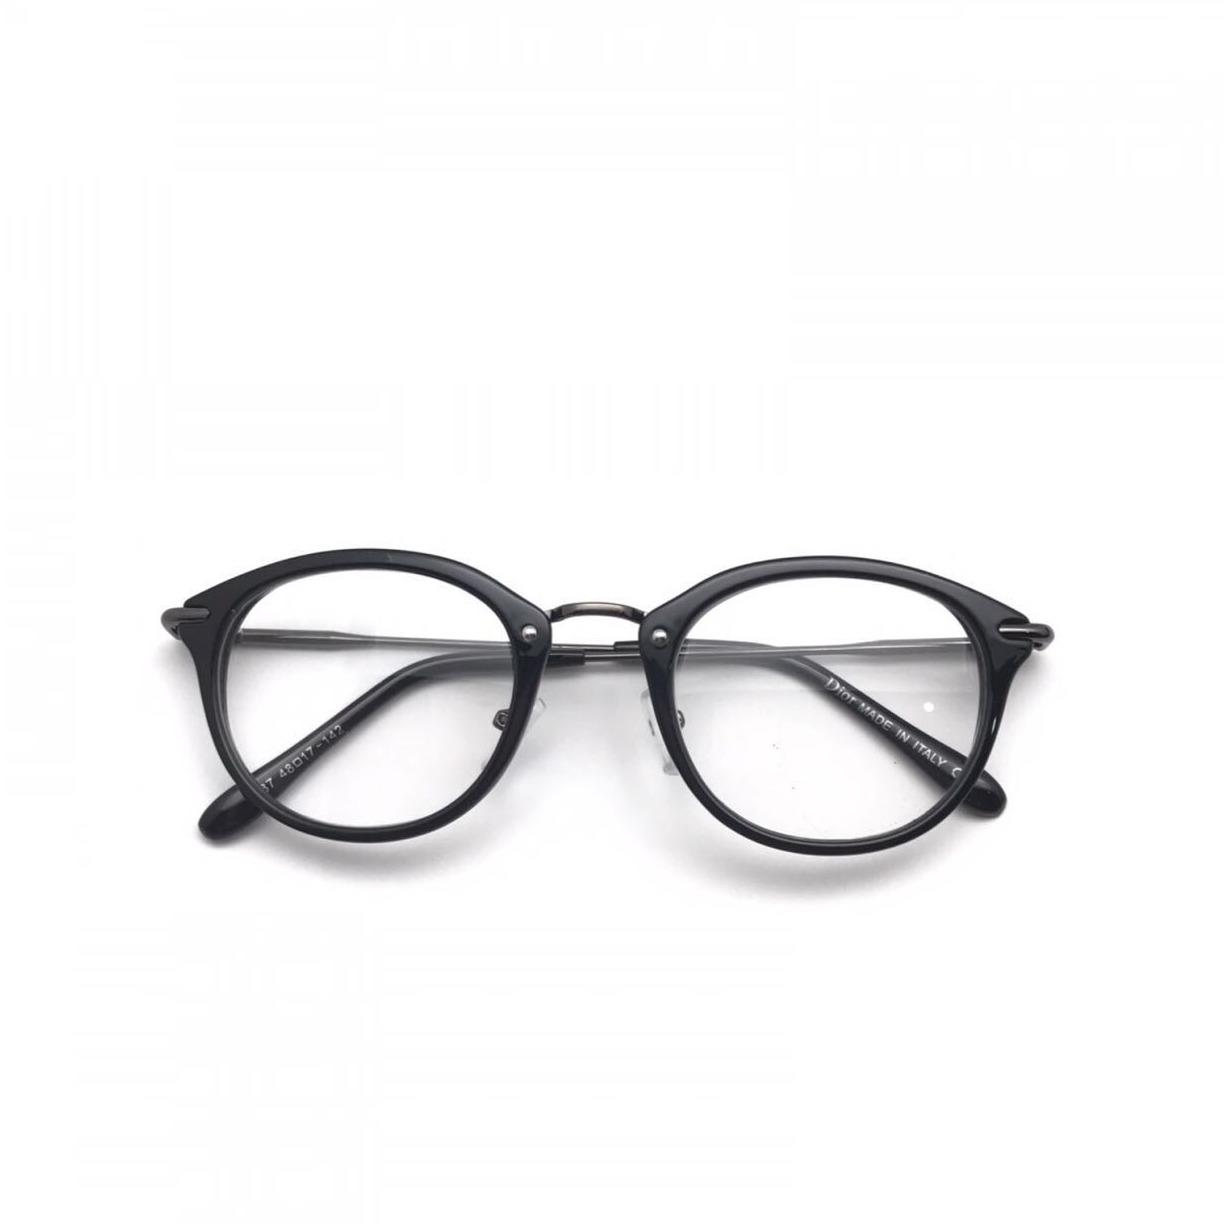 Frame Kacamata Baca Fashion 7398 Full Black Glossy .